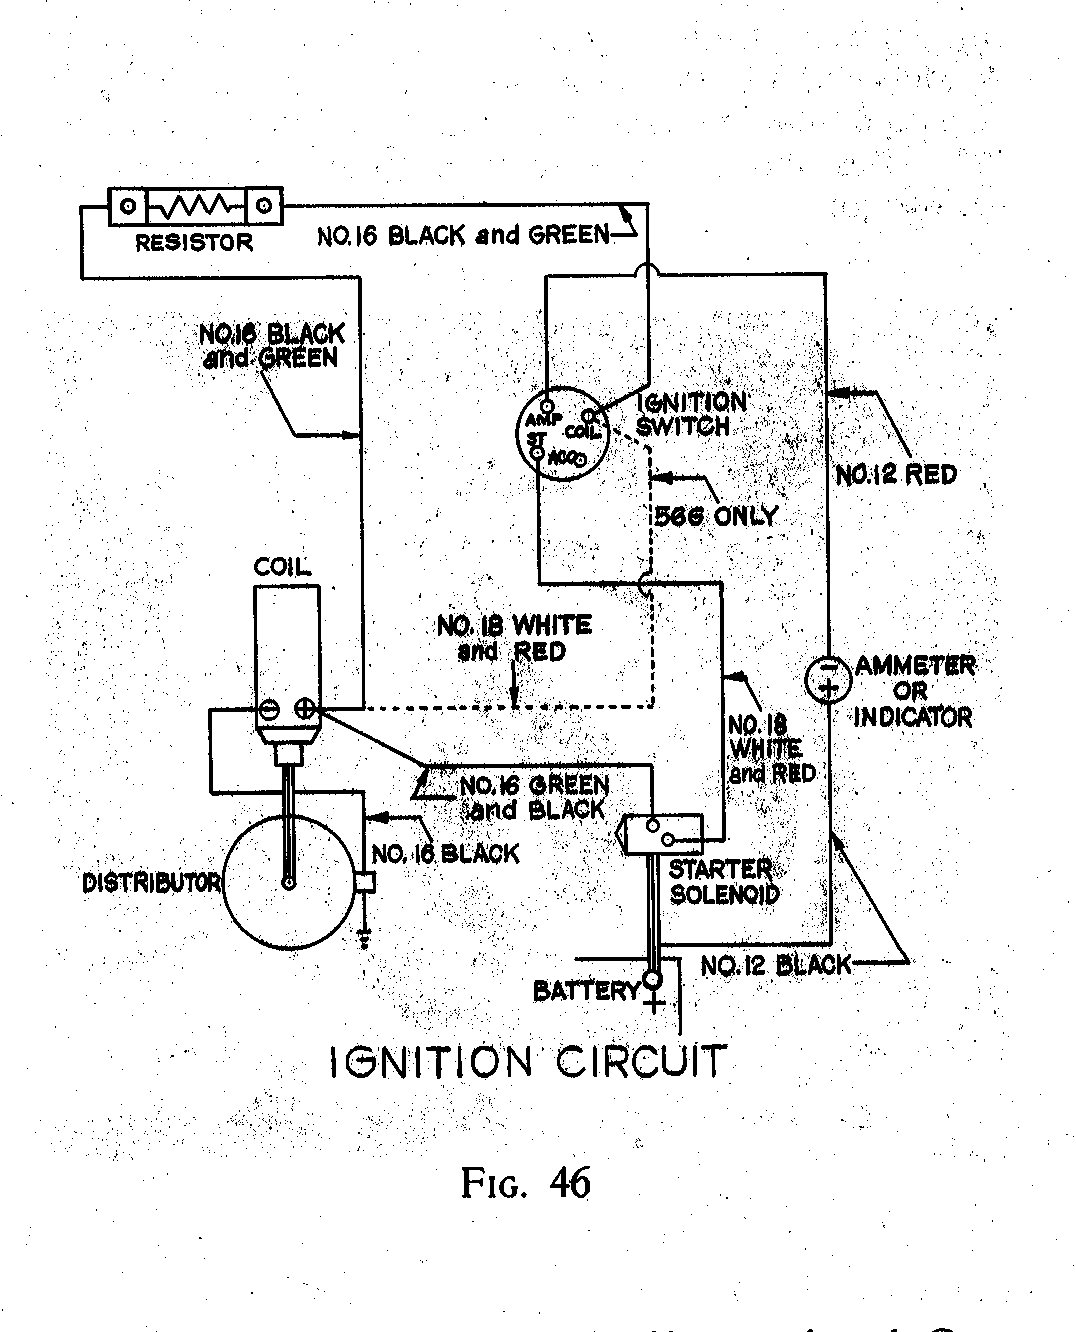 Wiring Diagrams for 1956 Studebaker Cars and Trucks